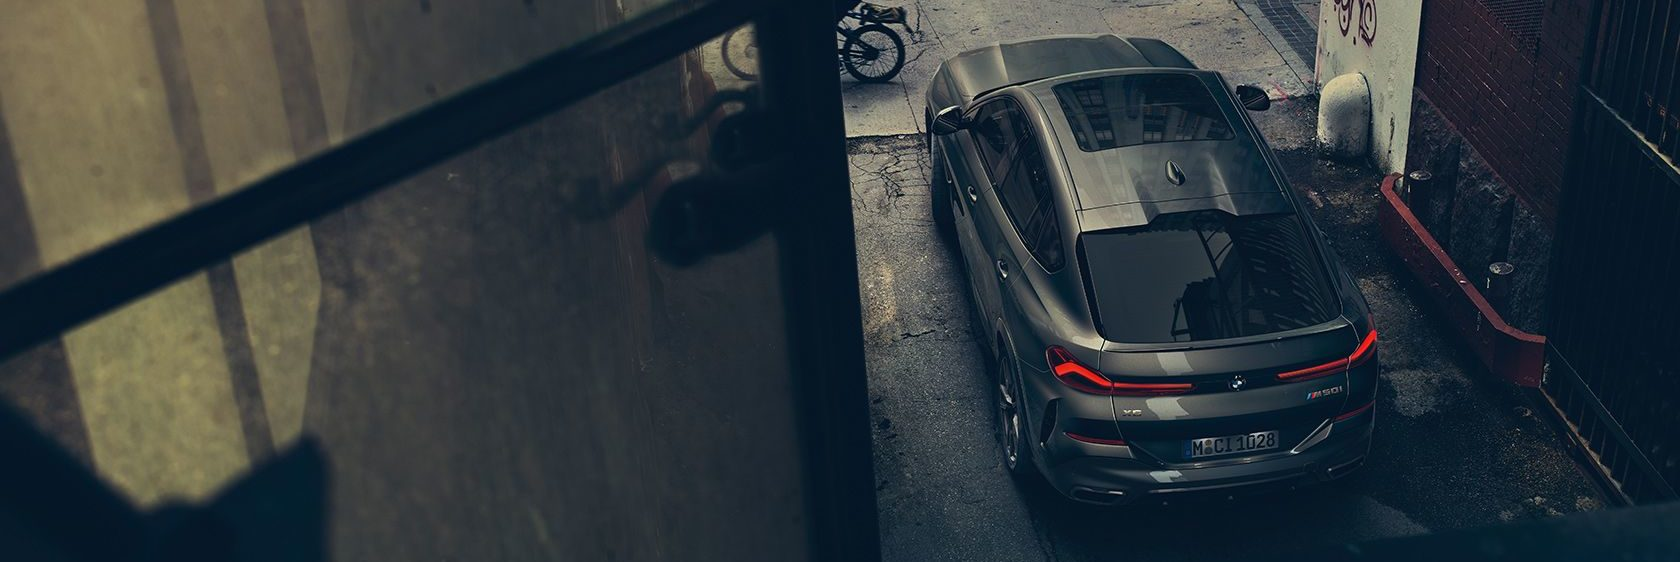 Top of the BMW X6 parked in an alley